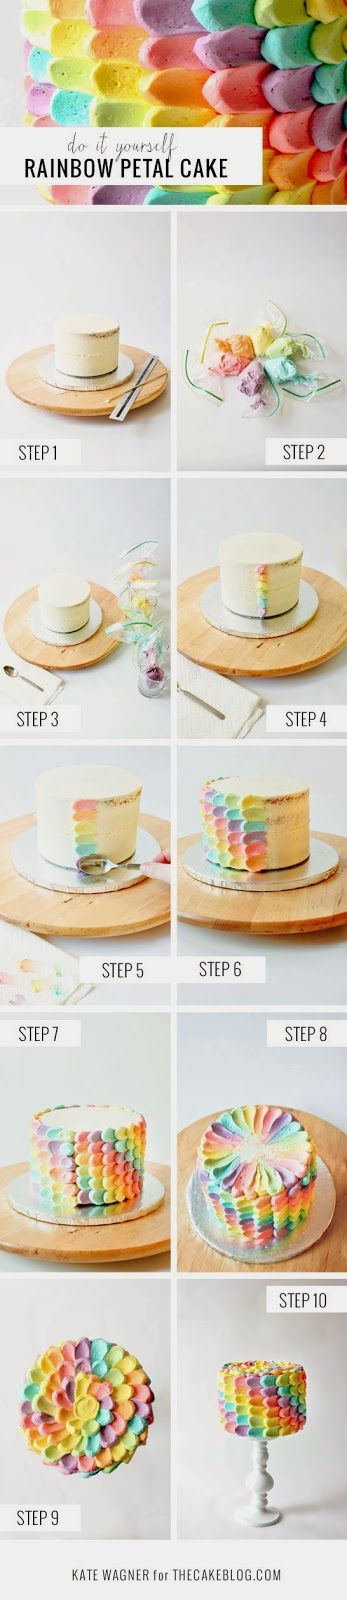 food blog: Rainbow petal cake